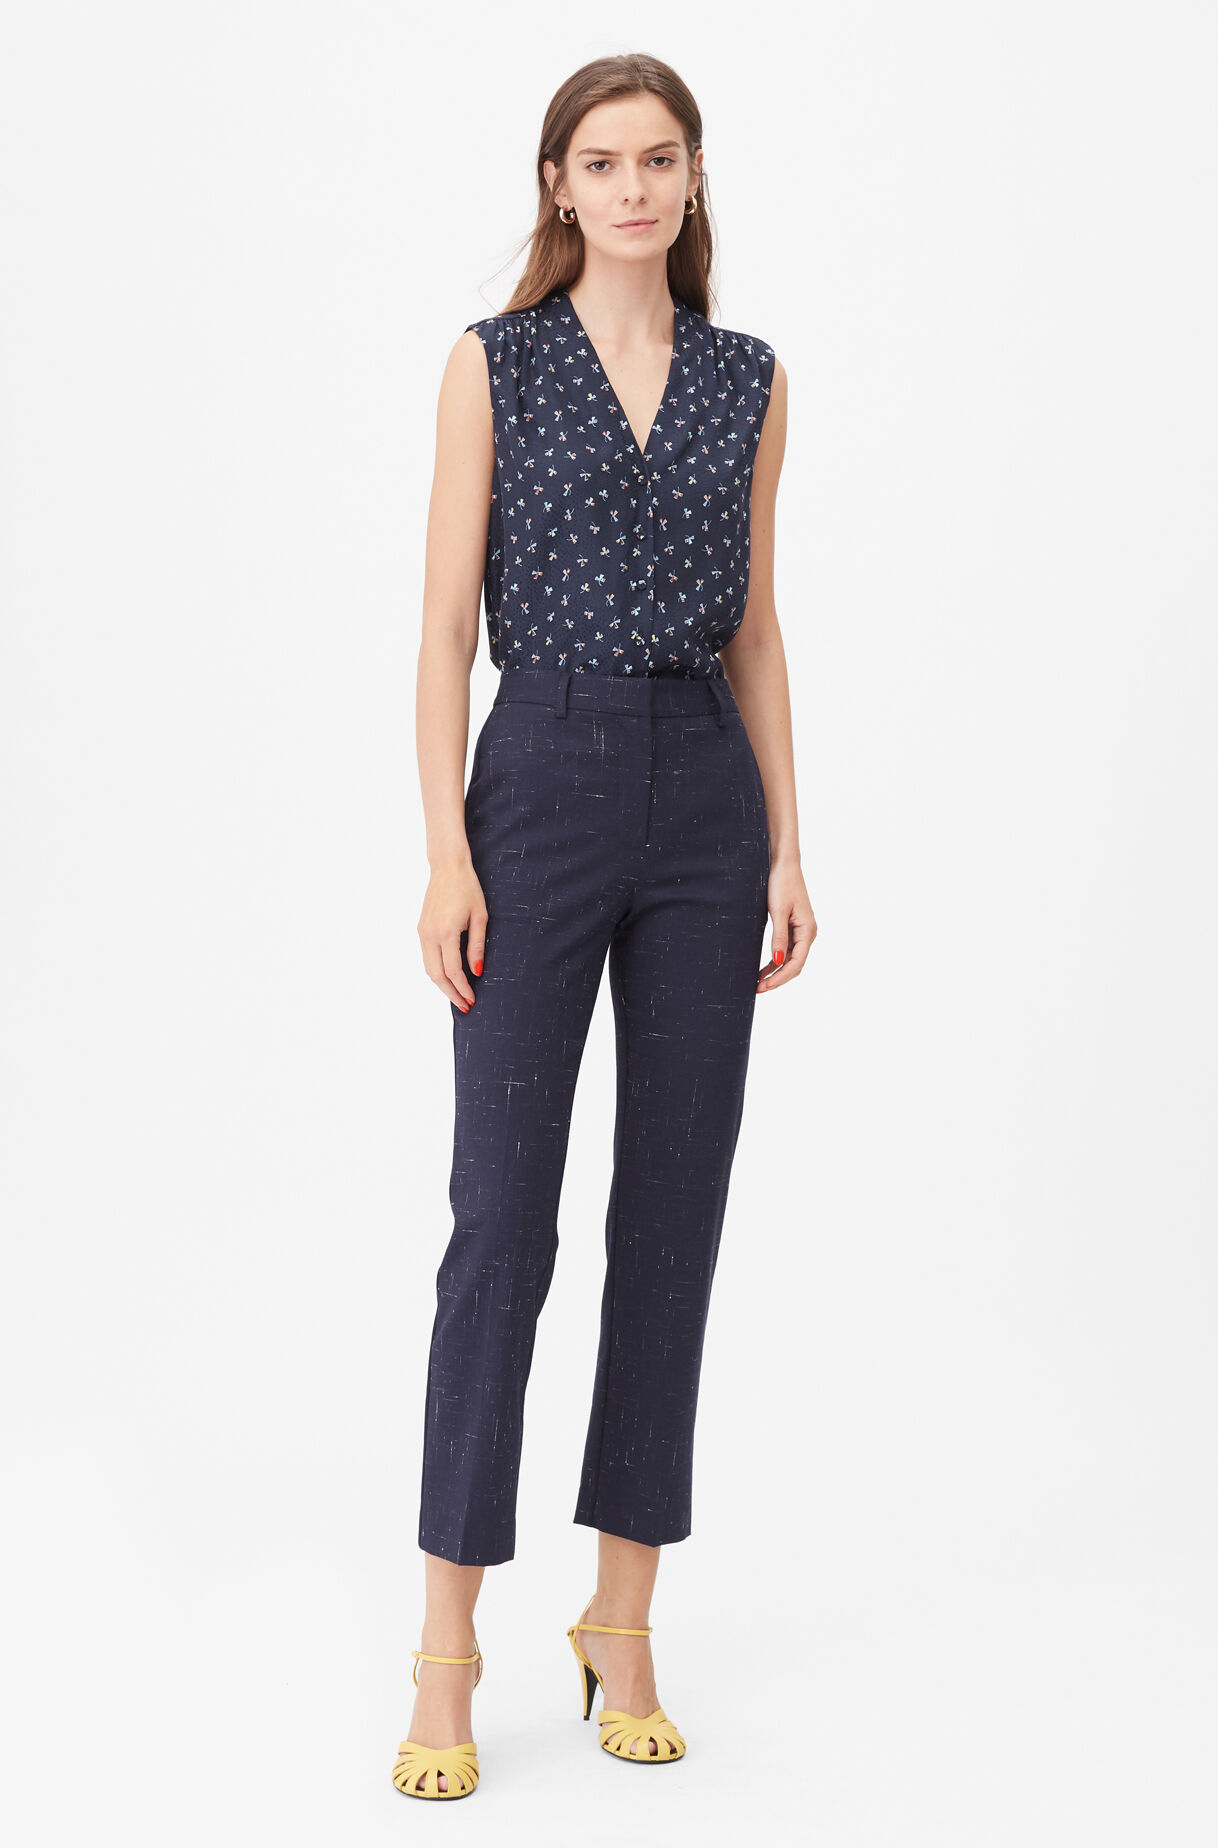 Tailored Cross Hatch Suiting Pant, , large